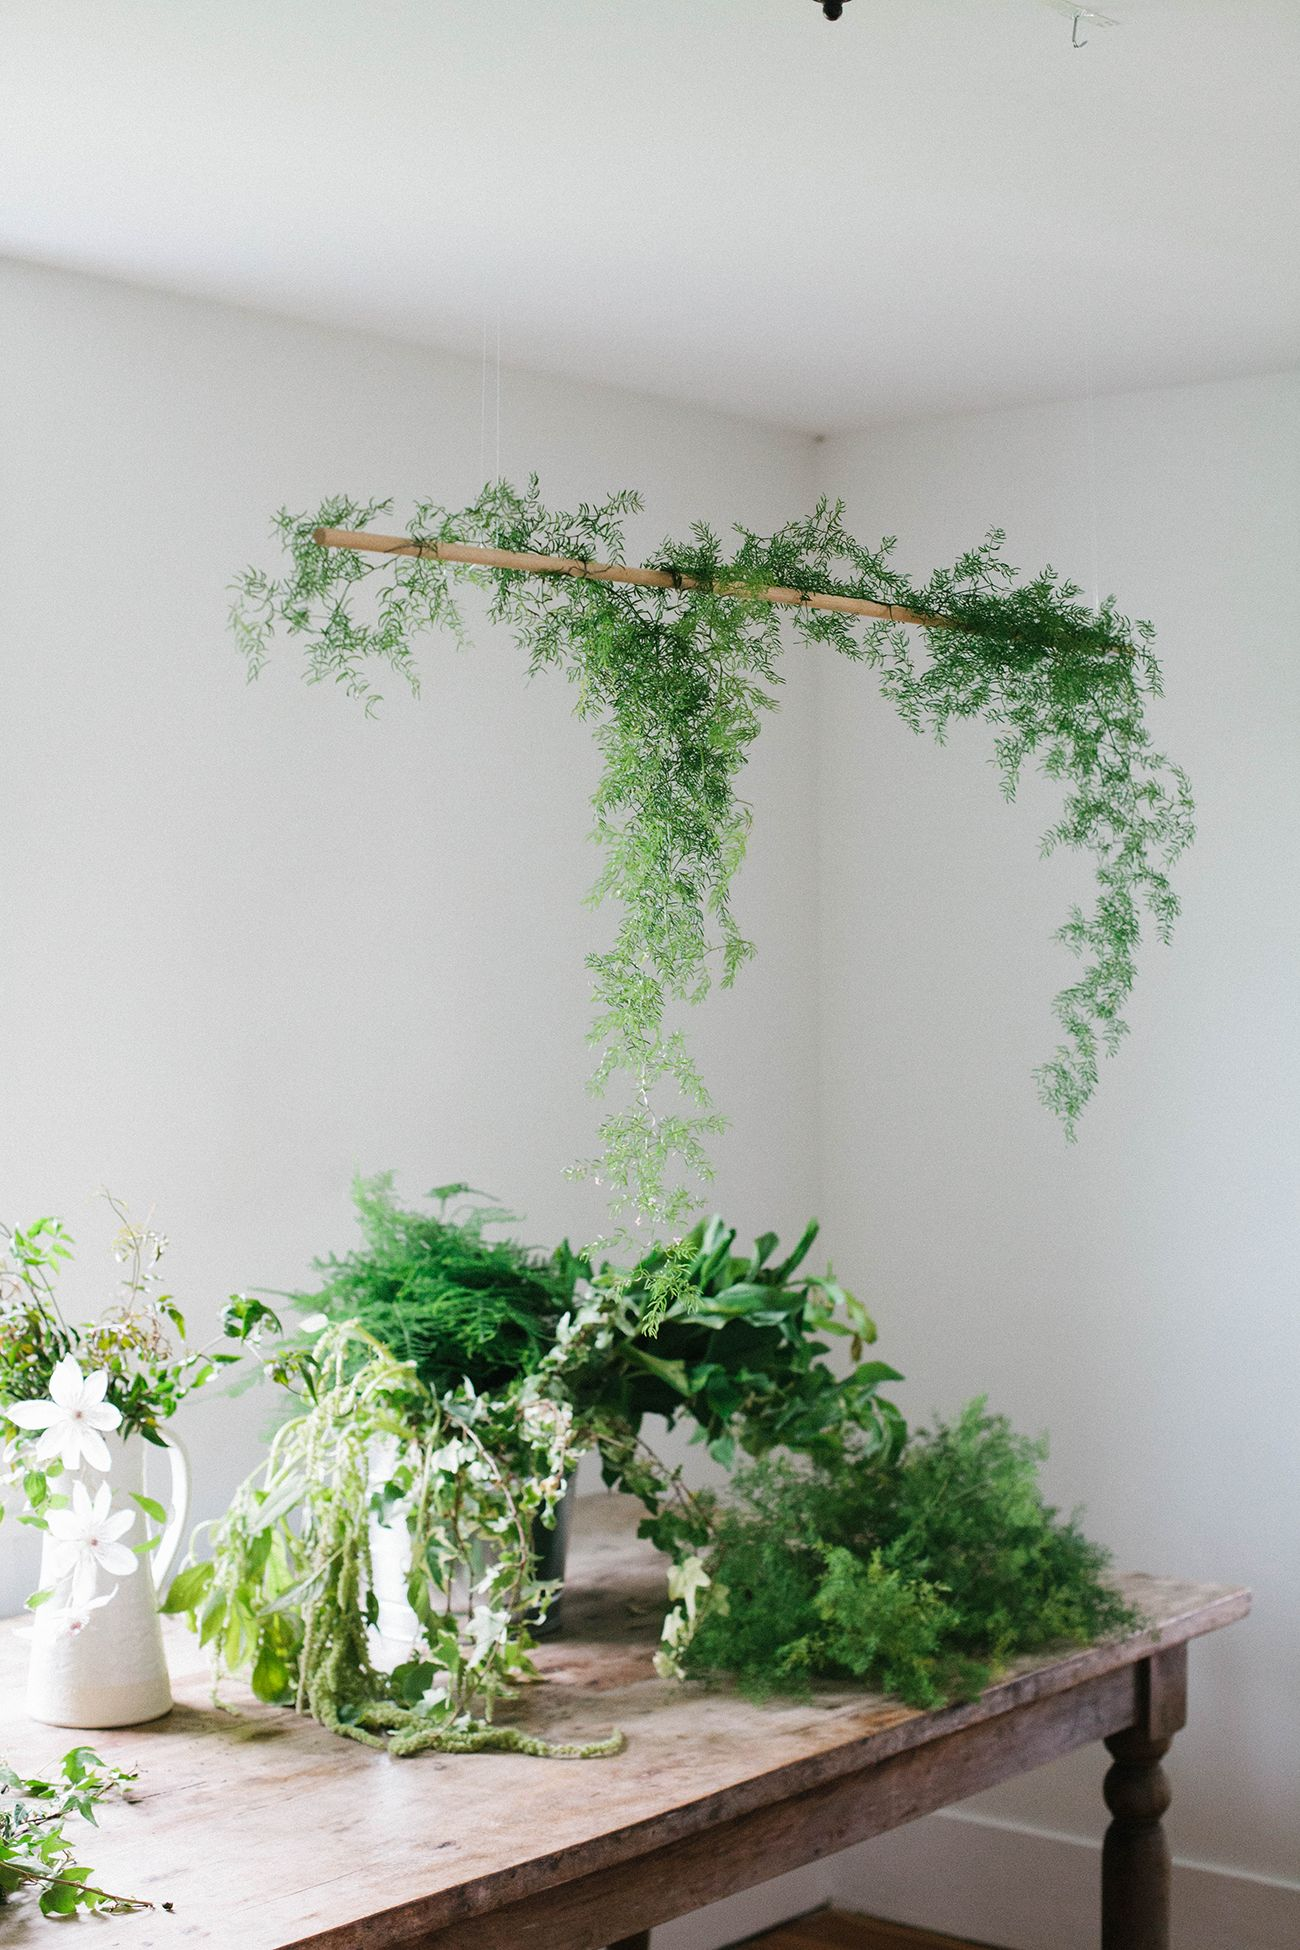 Green plants hanging over table